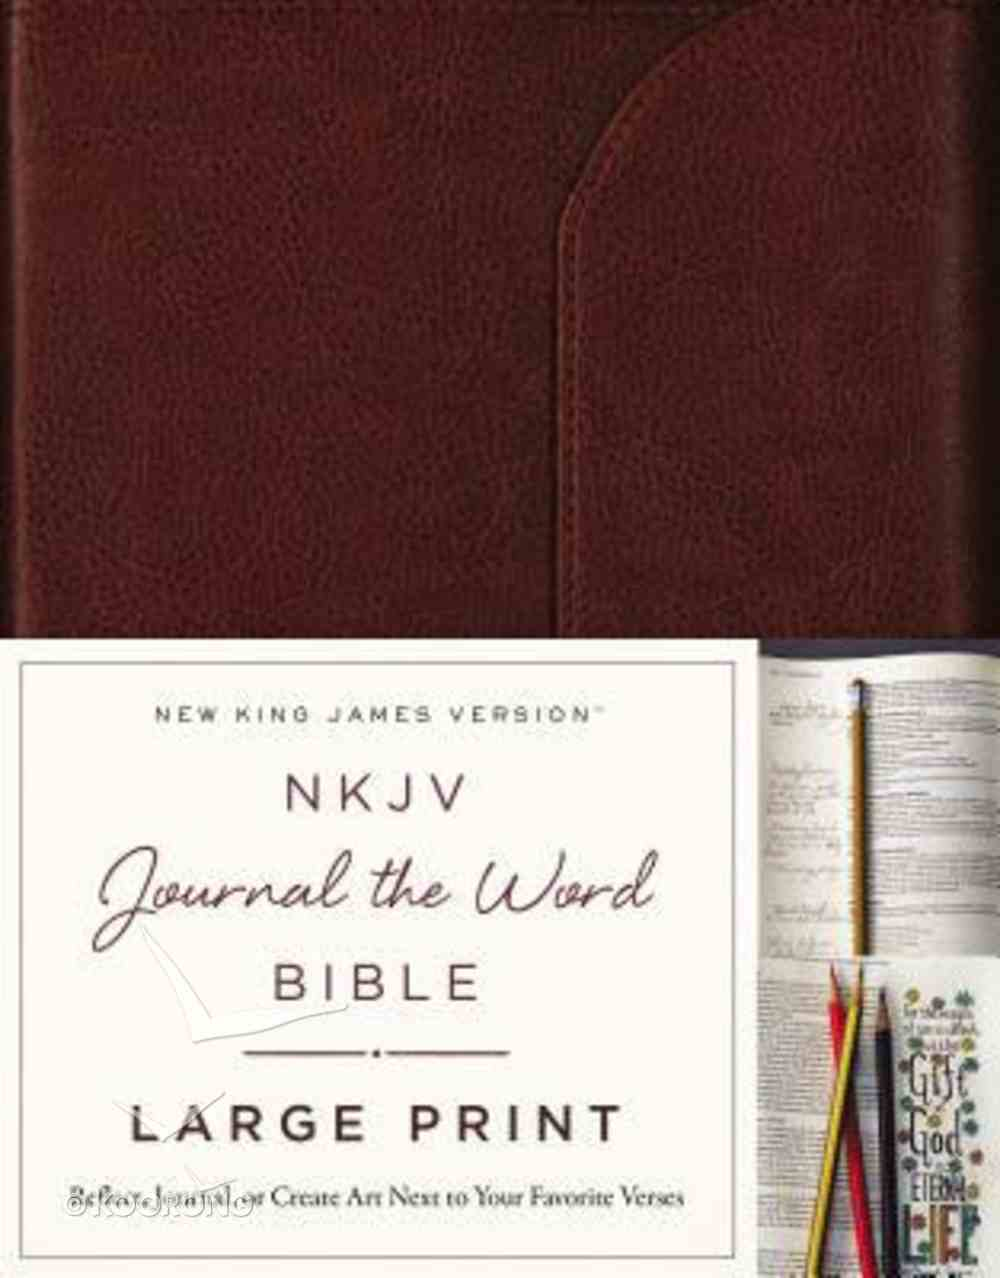 NKJV Journal the Word Bible Large Print Brown (Red Letter Edition) Genuine Leather